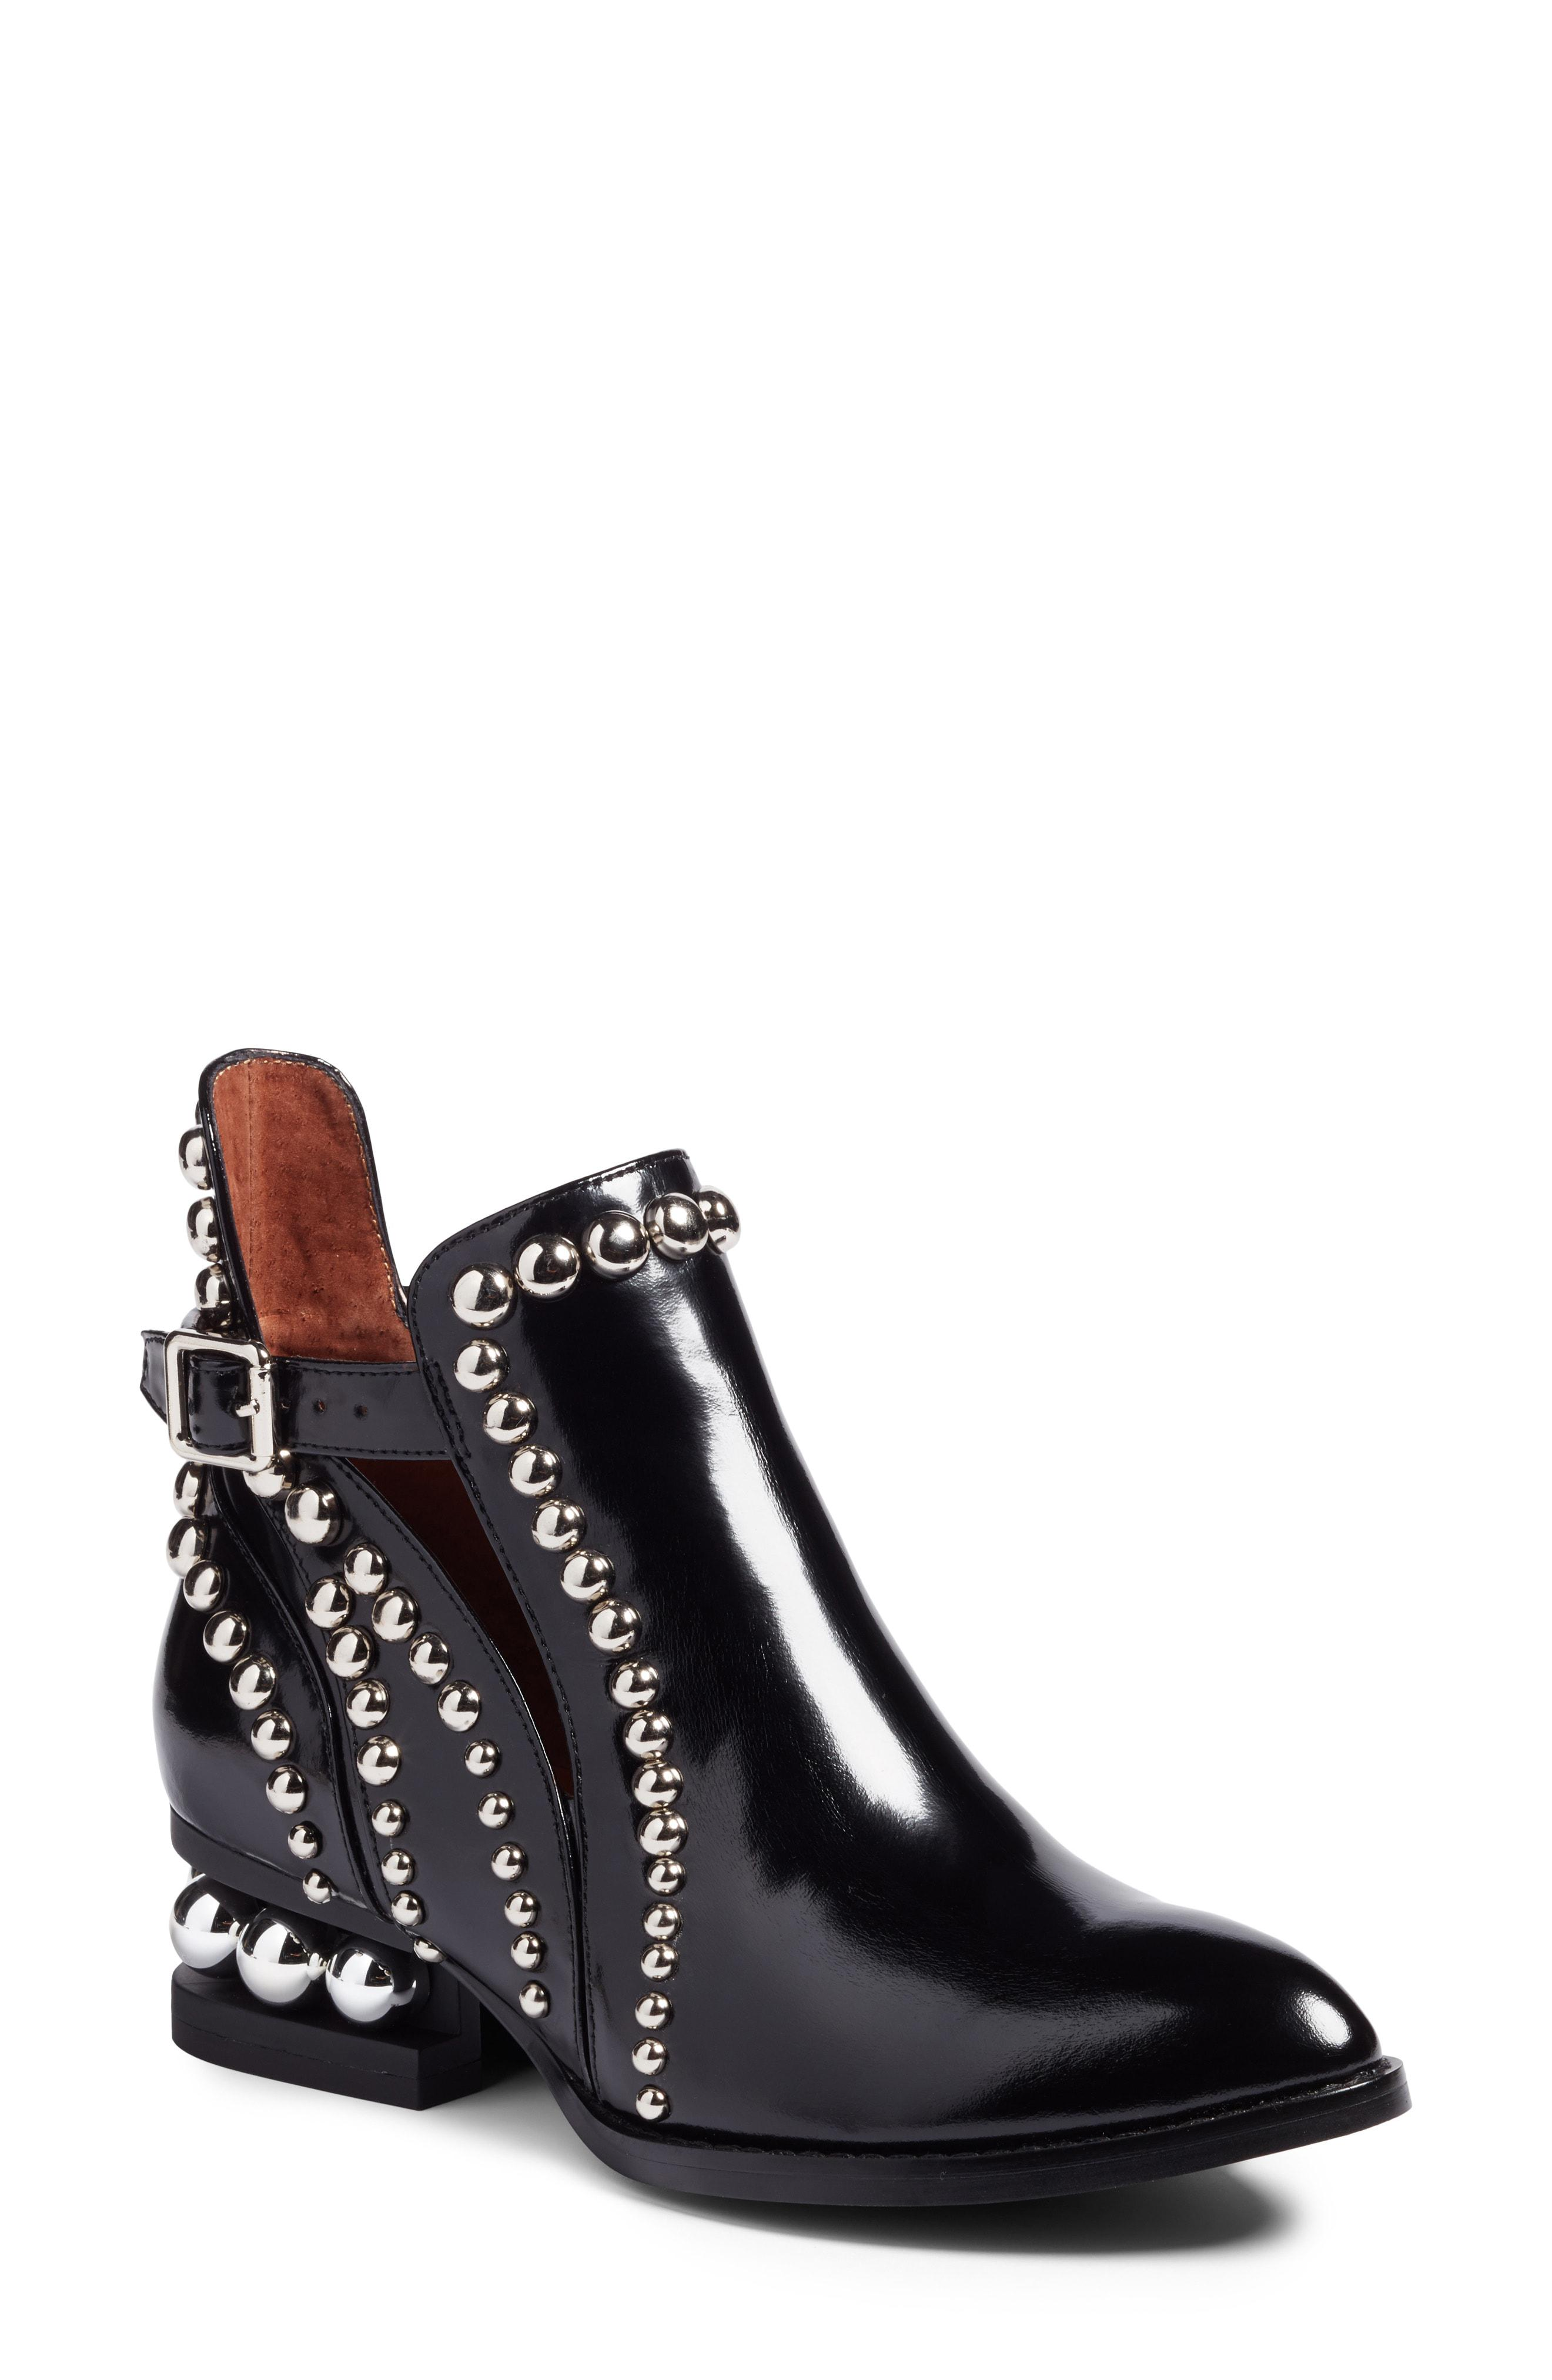 Lyst - Jeffrey Campbell Rylance Studded Boots in Black d065e1206